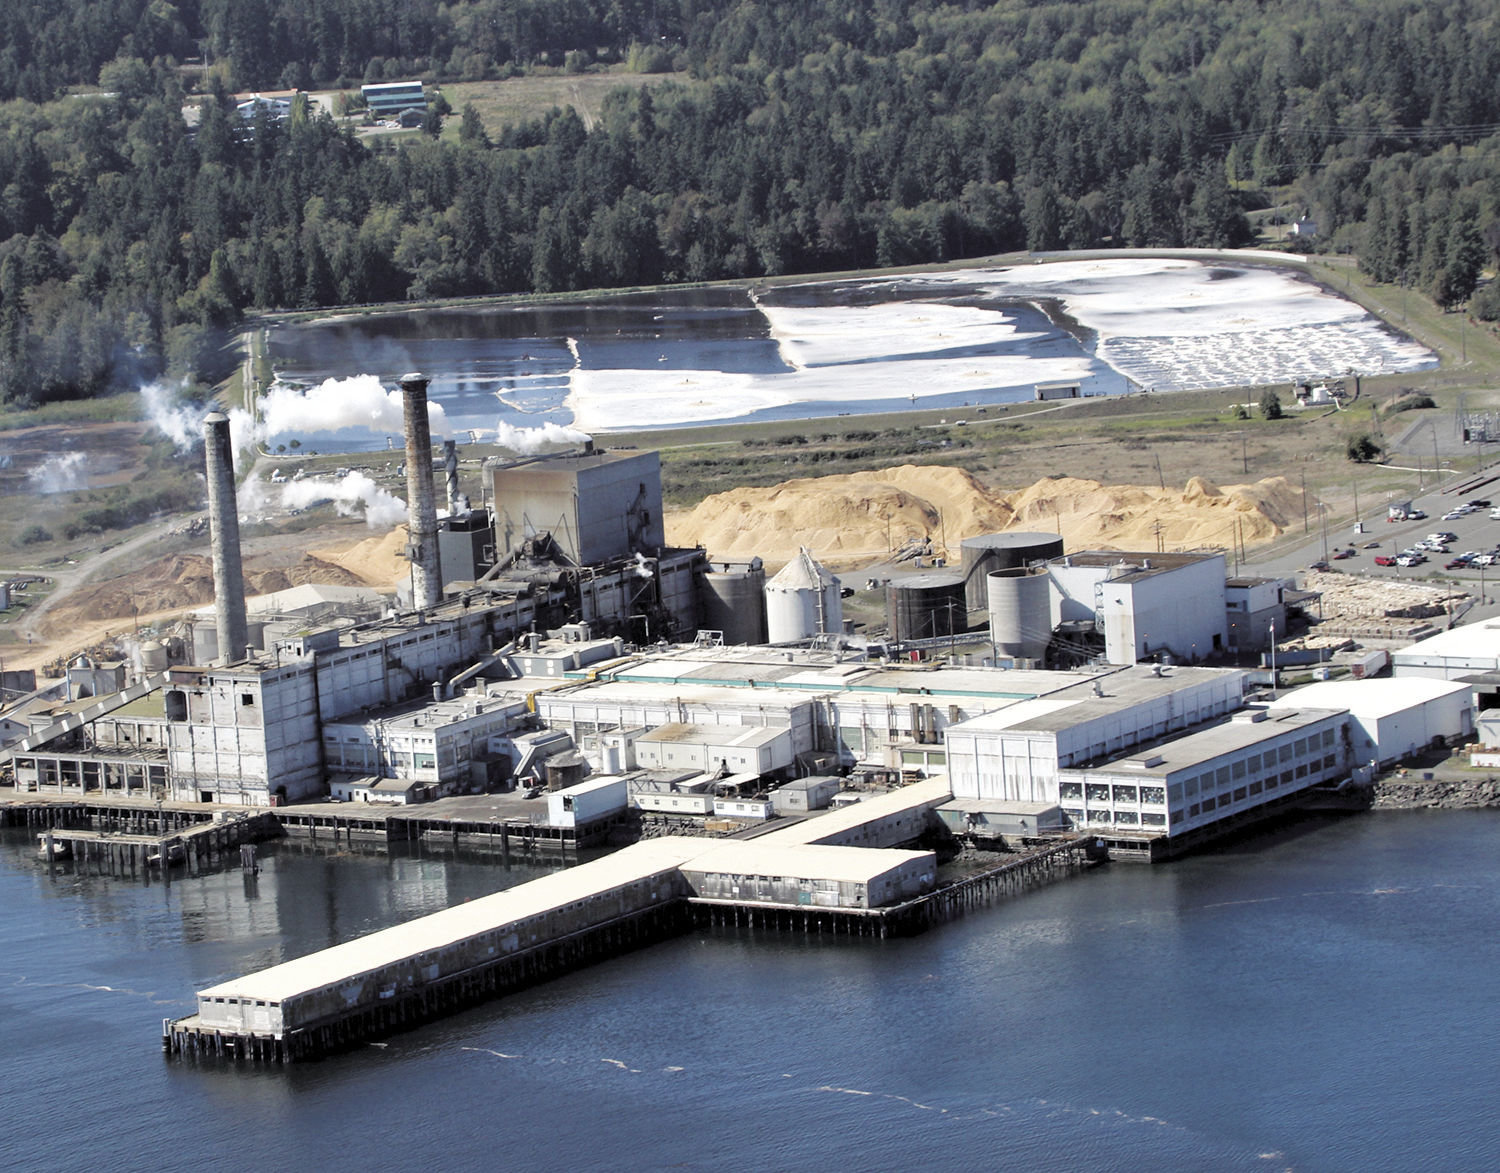 Crown Paper Group has invested more than $40 million since buying the Port Townsend Paper Corp. in 2015. The mill was fined $30,000 by the state Department of Ecology for two emission releases that occurred in 2016. Mill officials have 30 days from April 18 to appeal that decision. Leader file photo